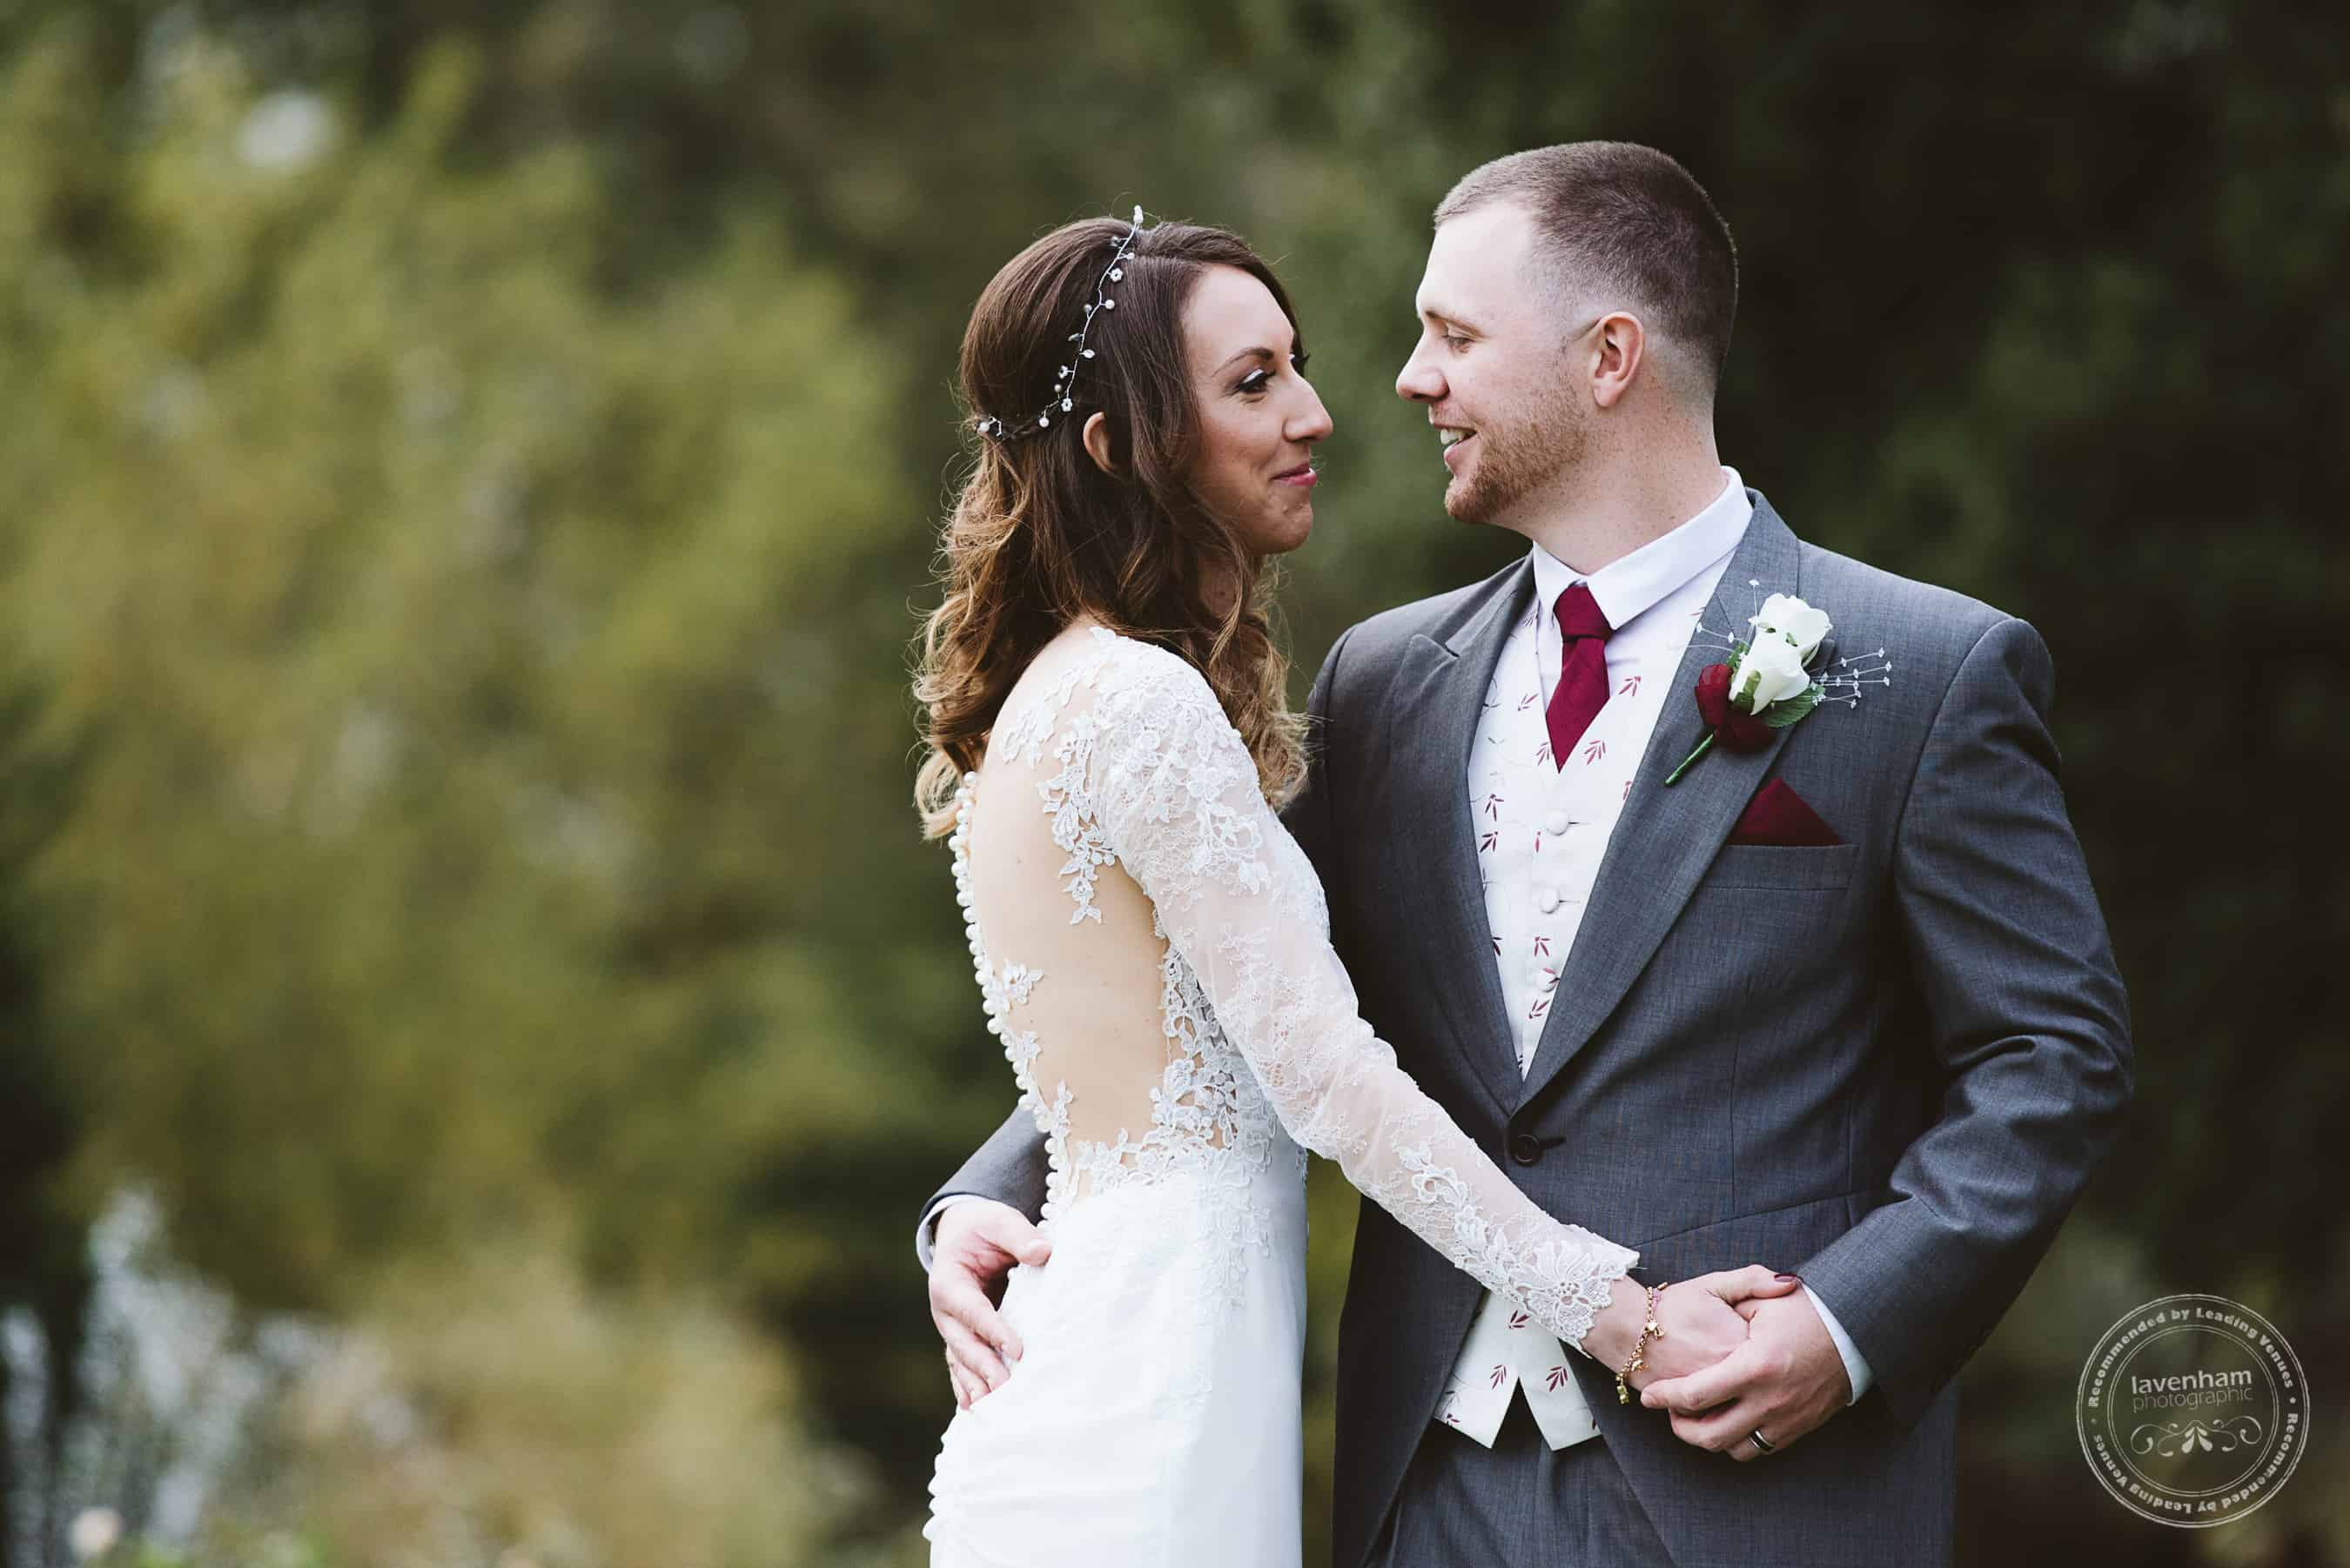 041118 Woodhall Manor Wedding Photography by Lavenham Photographic 081